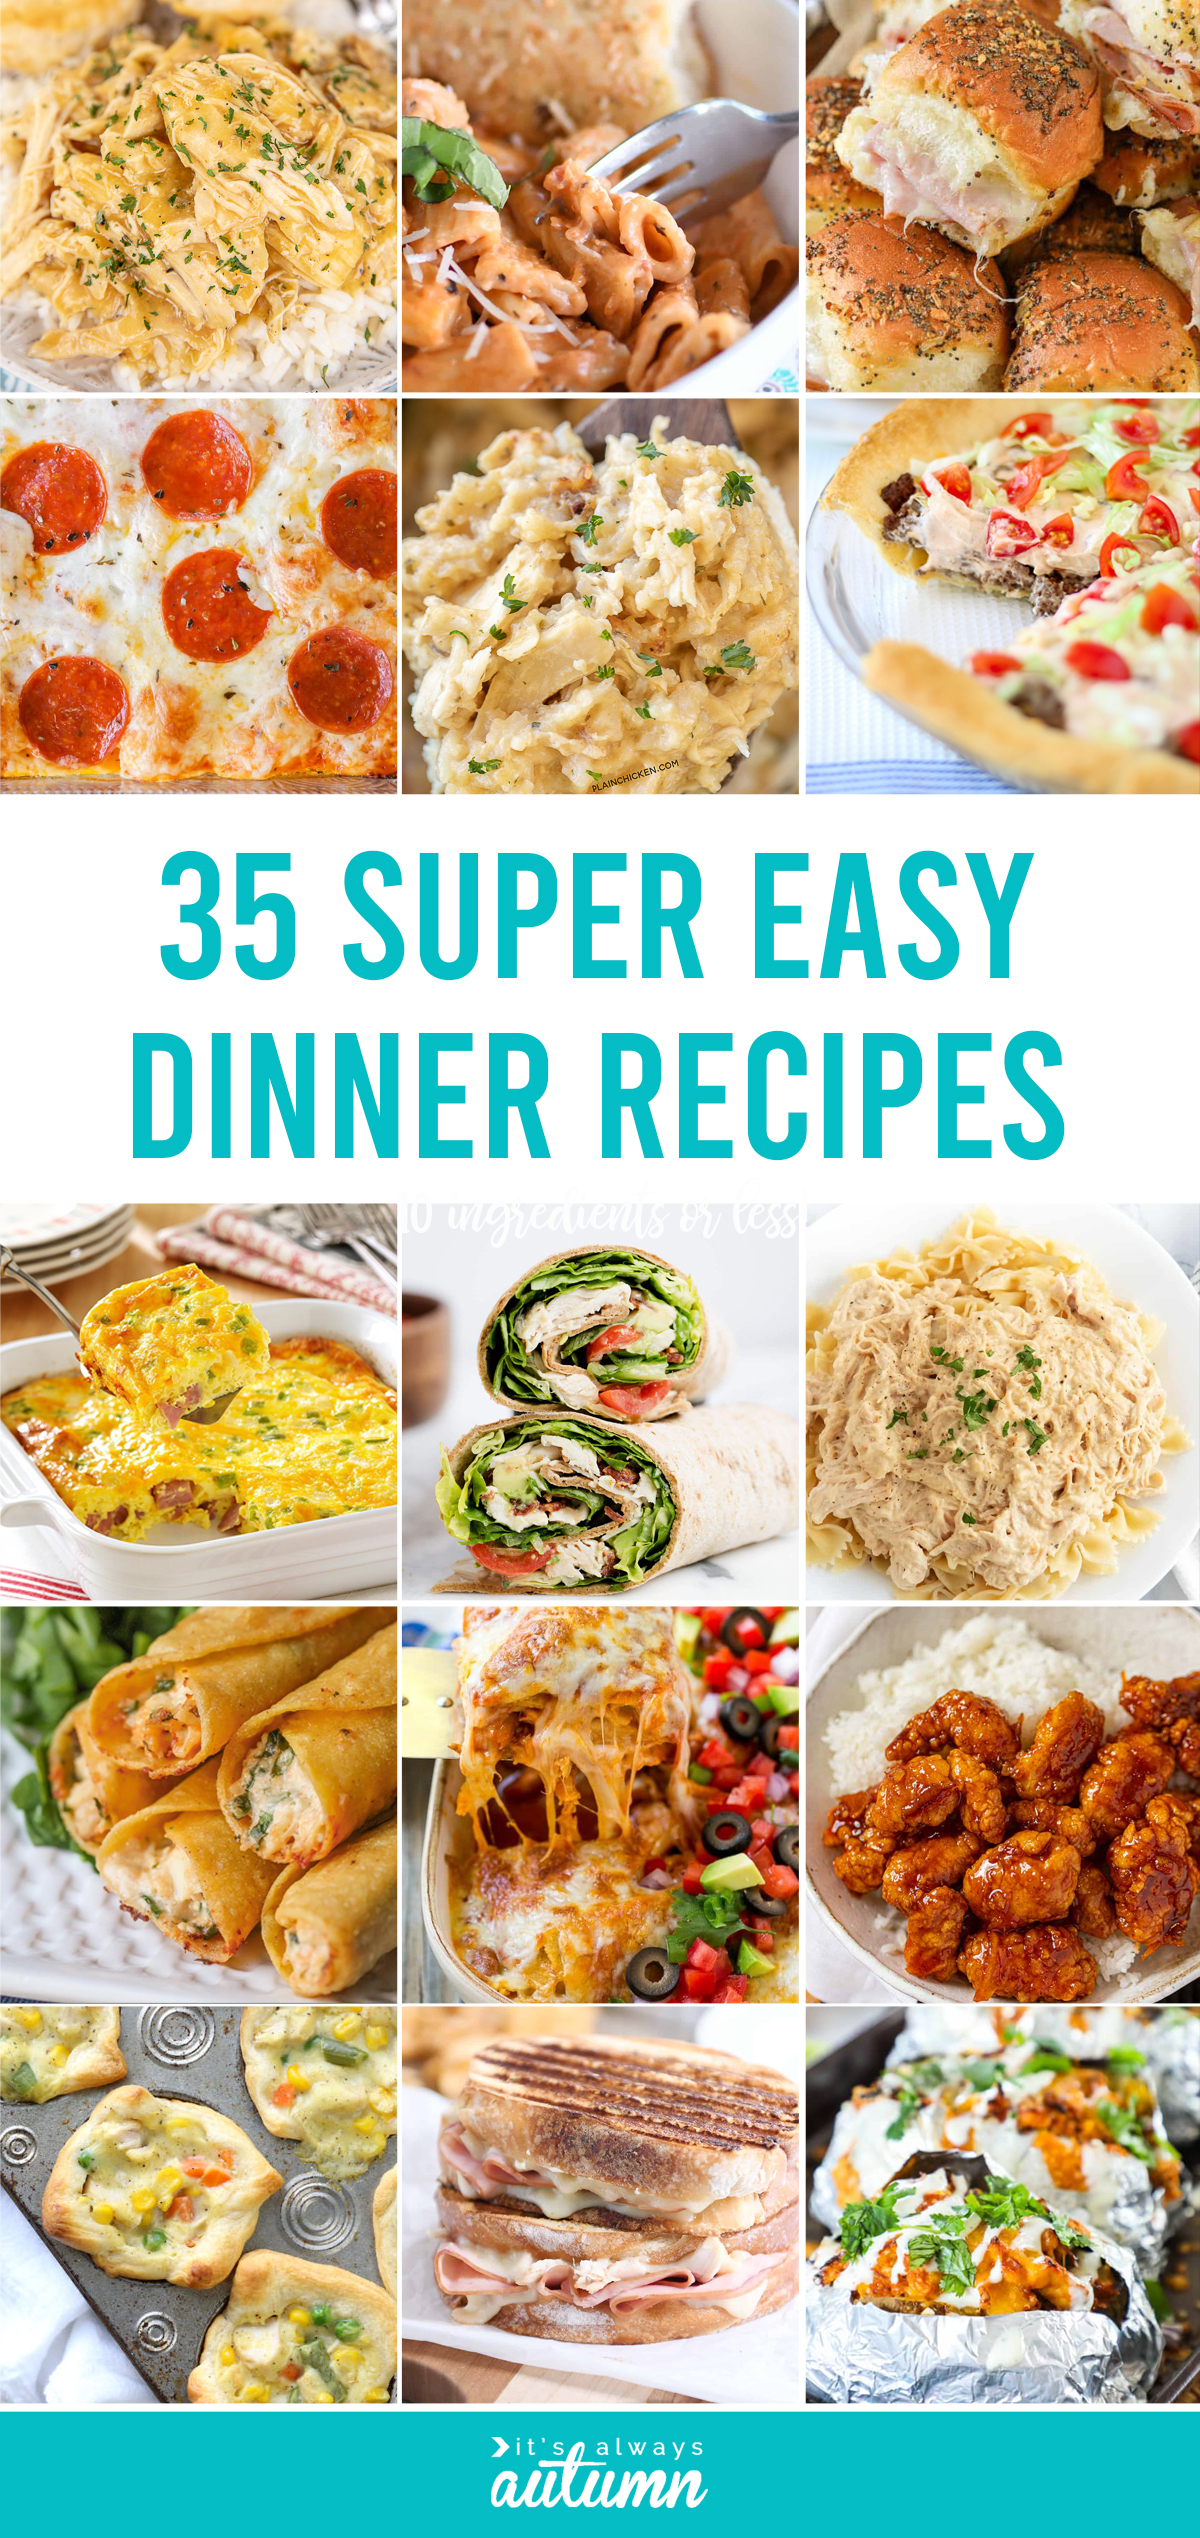 35 super easy dinner recipes - each of these simple dinner ideas uses 10 ingredients or less!